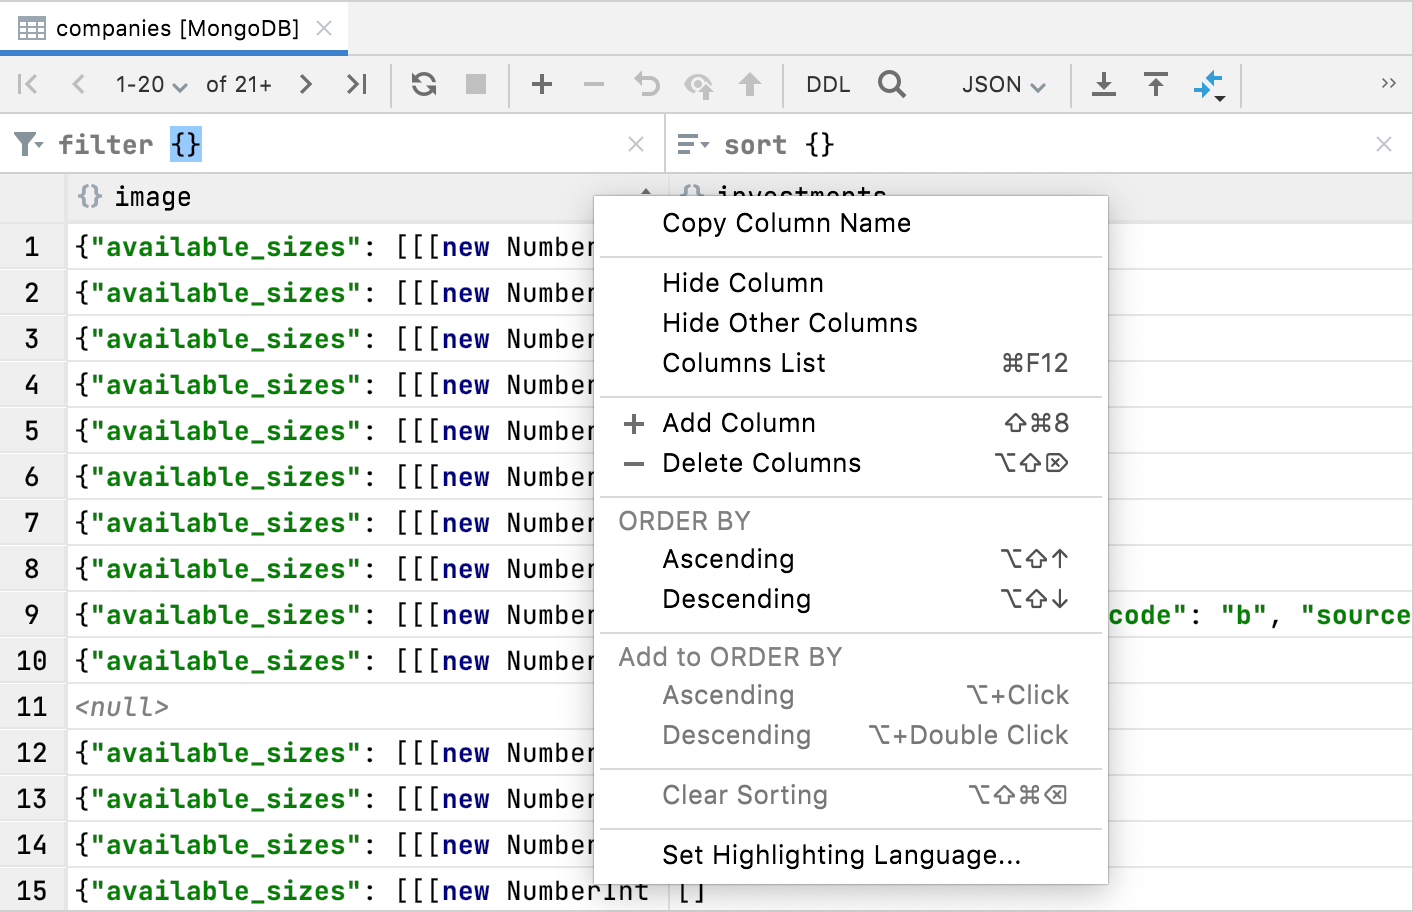 add and delete operations for columns